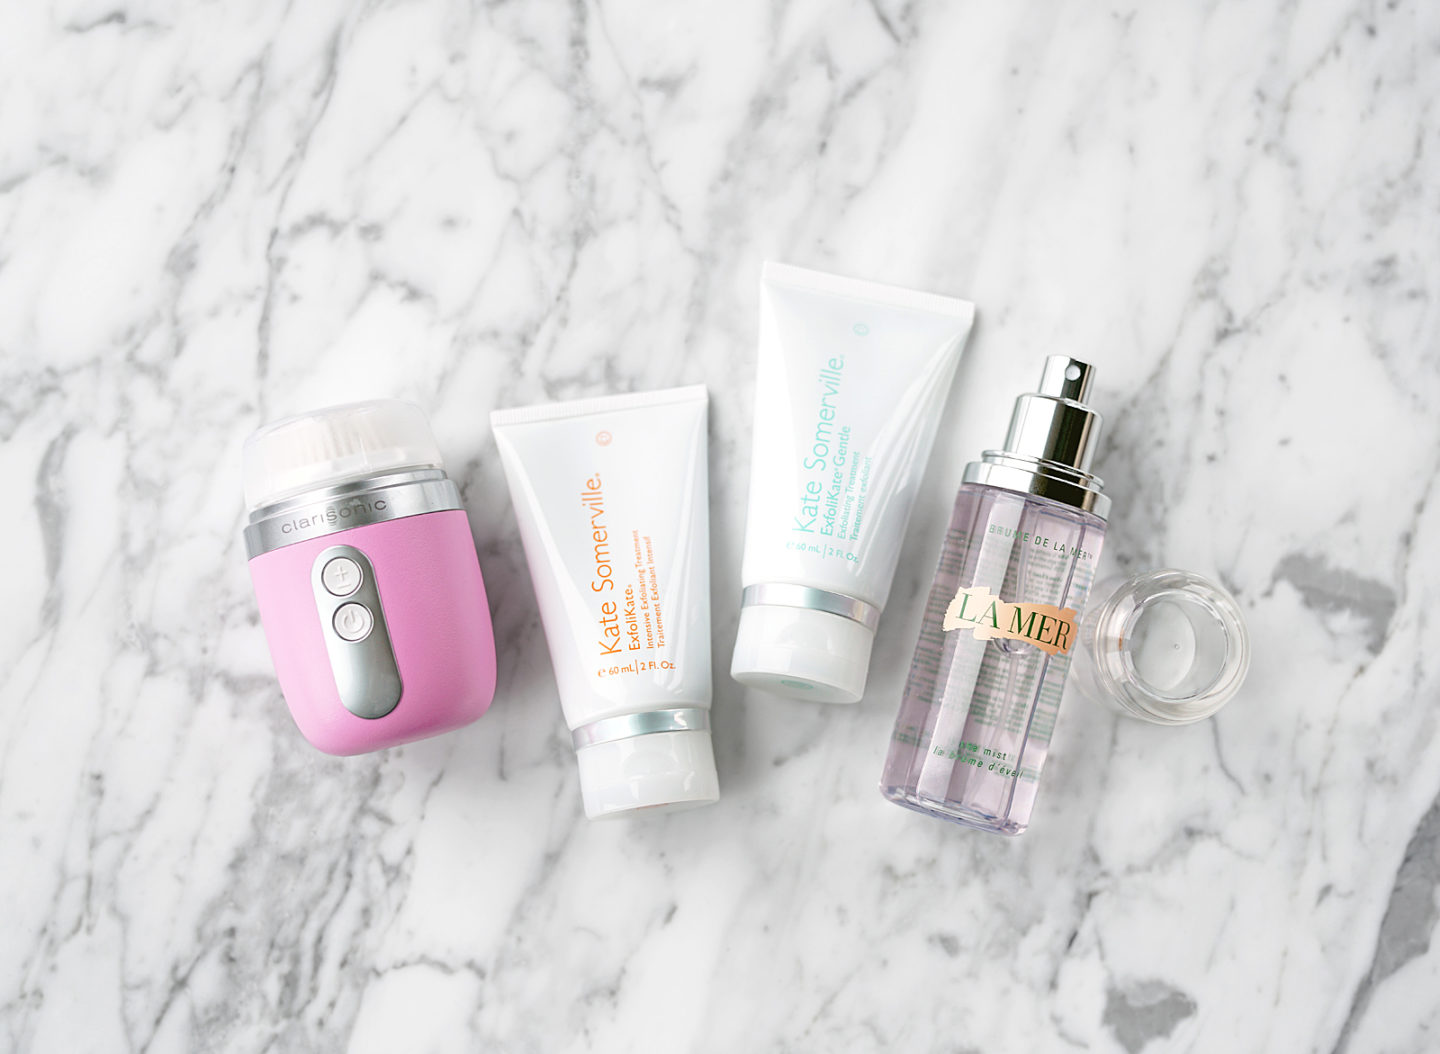 Clarisonic Mia Fit Kate Somerville Scrub La Mer Face Mist